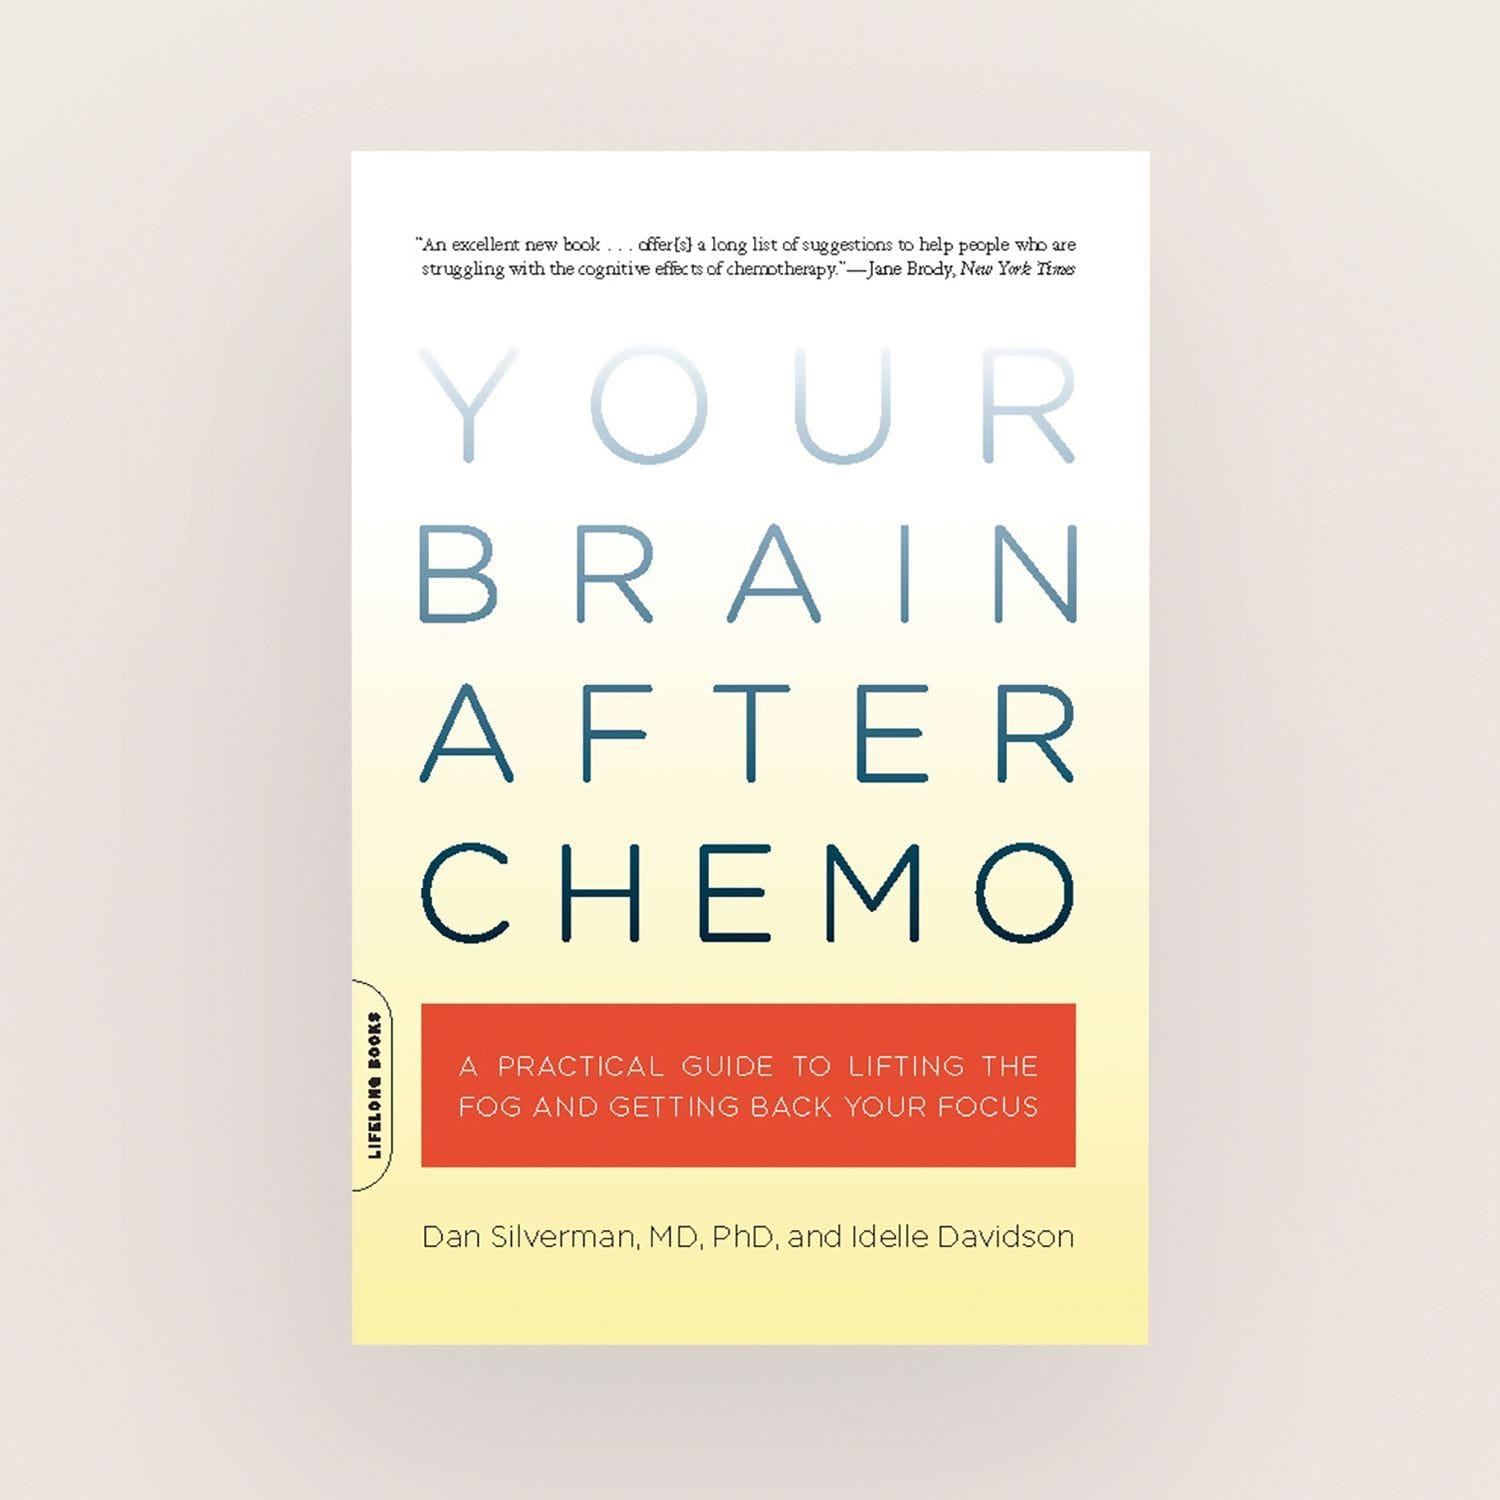 Your Brain After Chemo by Dan Silverman